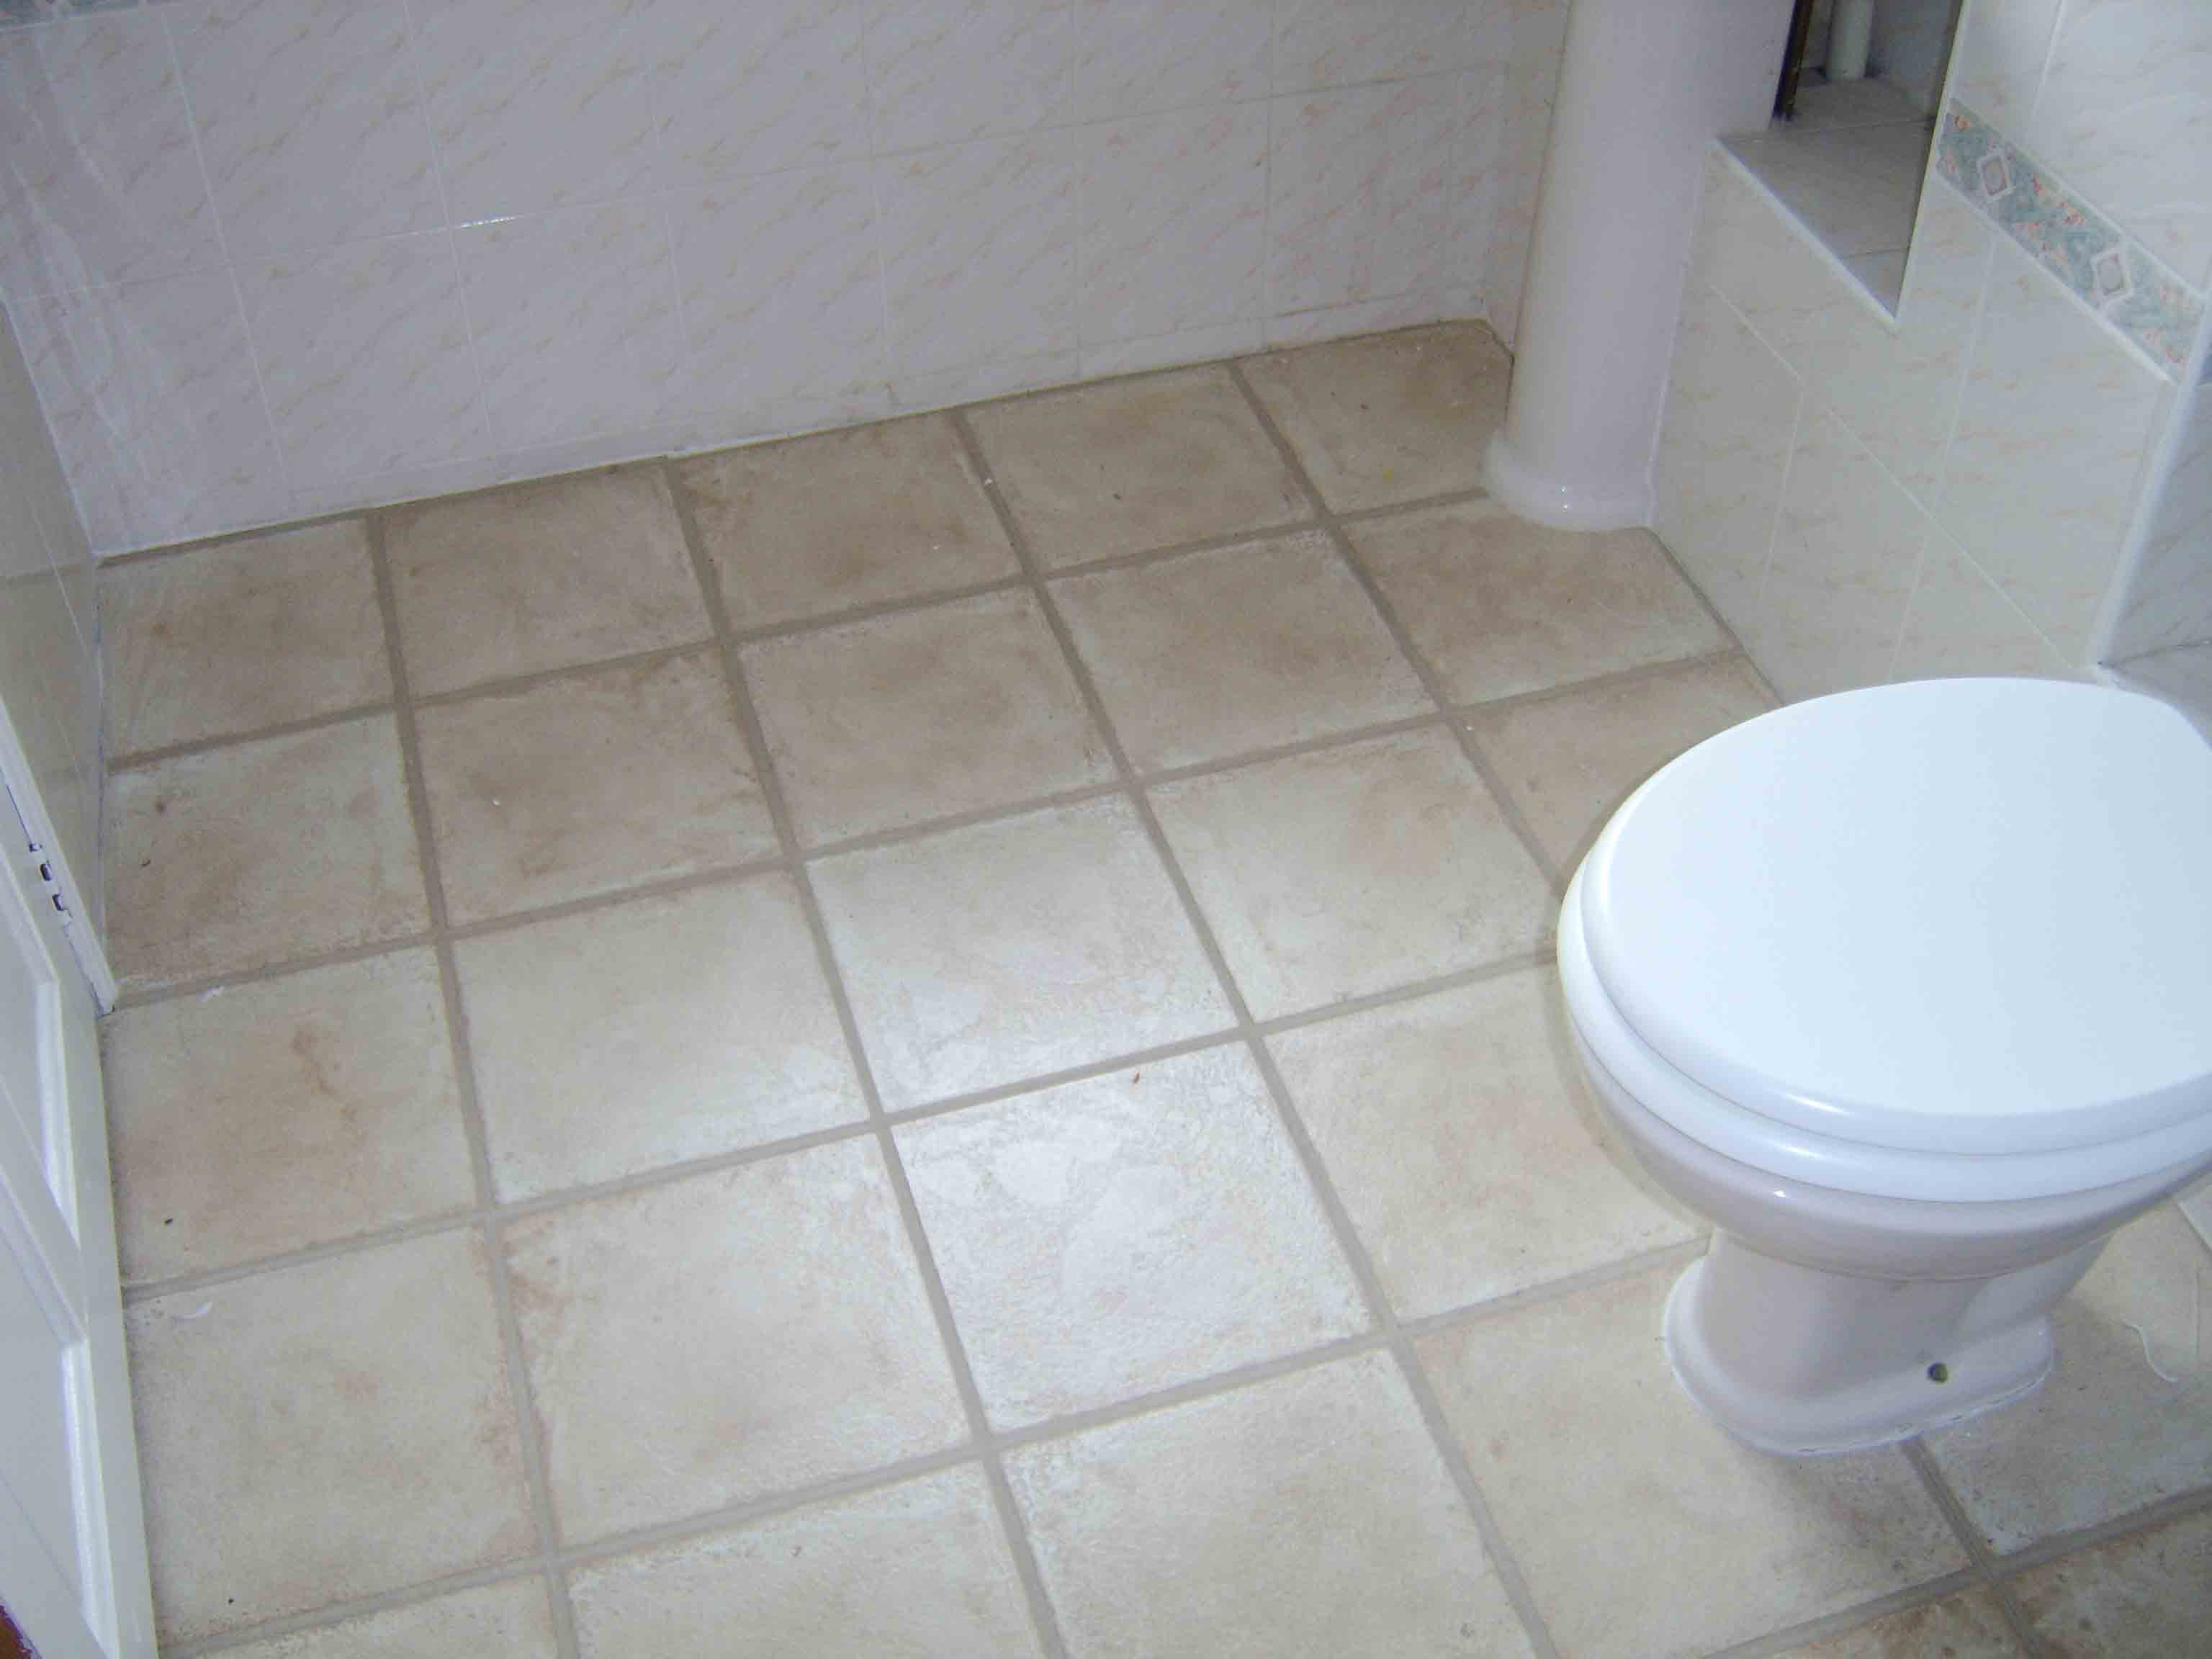 How To Tile A Bathroom Floor Video Untitled Document